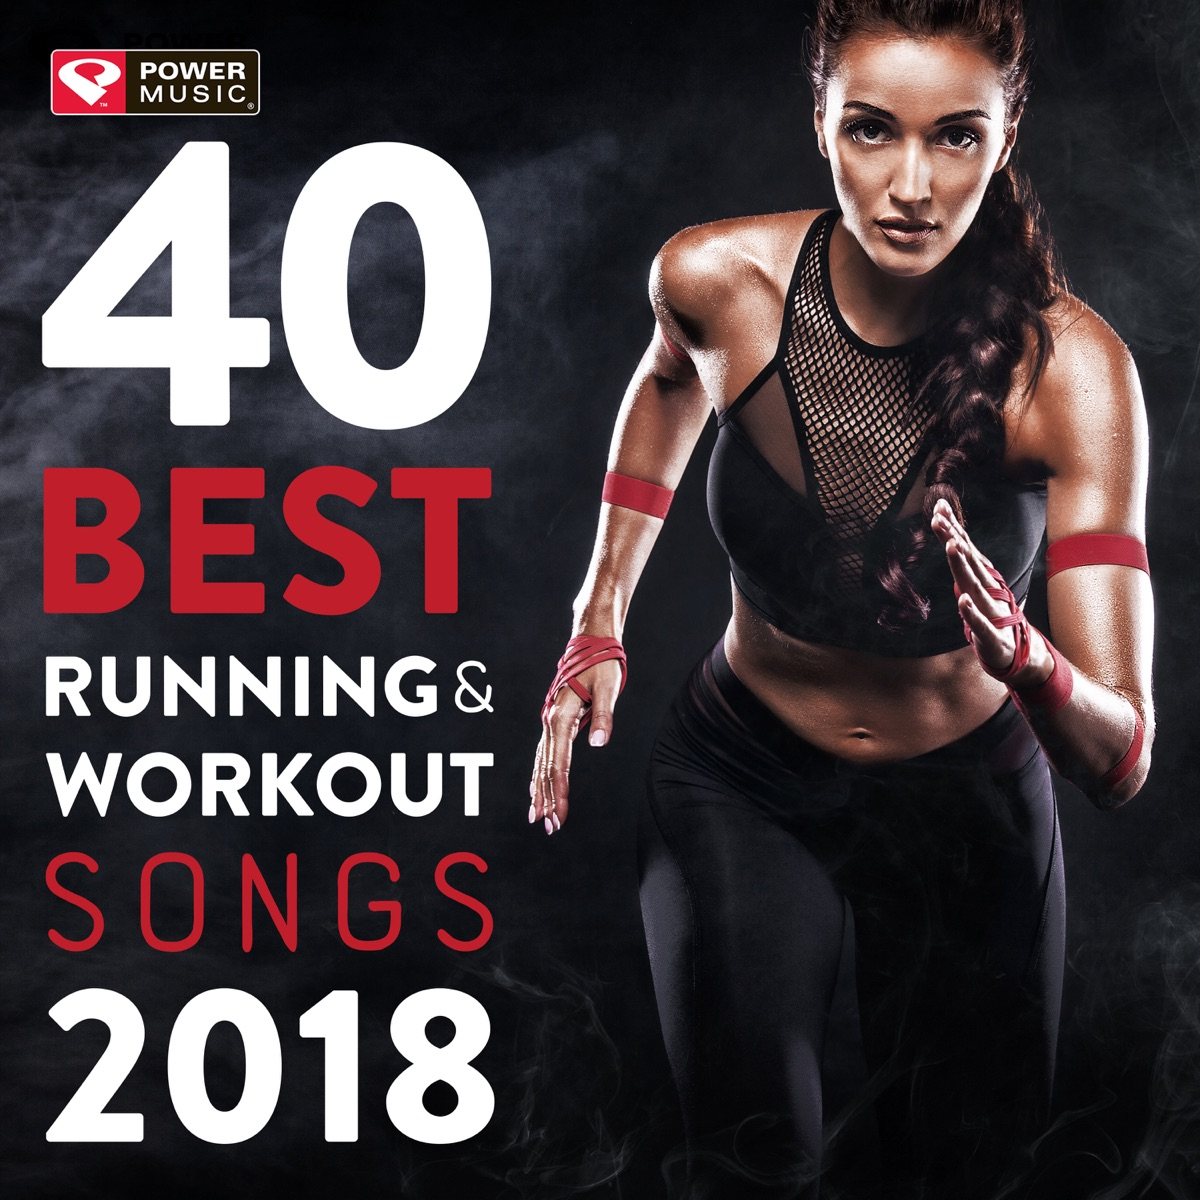 40 Best Running and Workout Songs 2018 Album Cover by Power Music